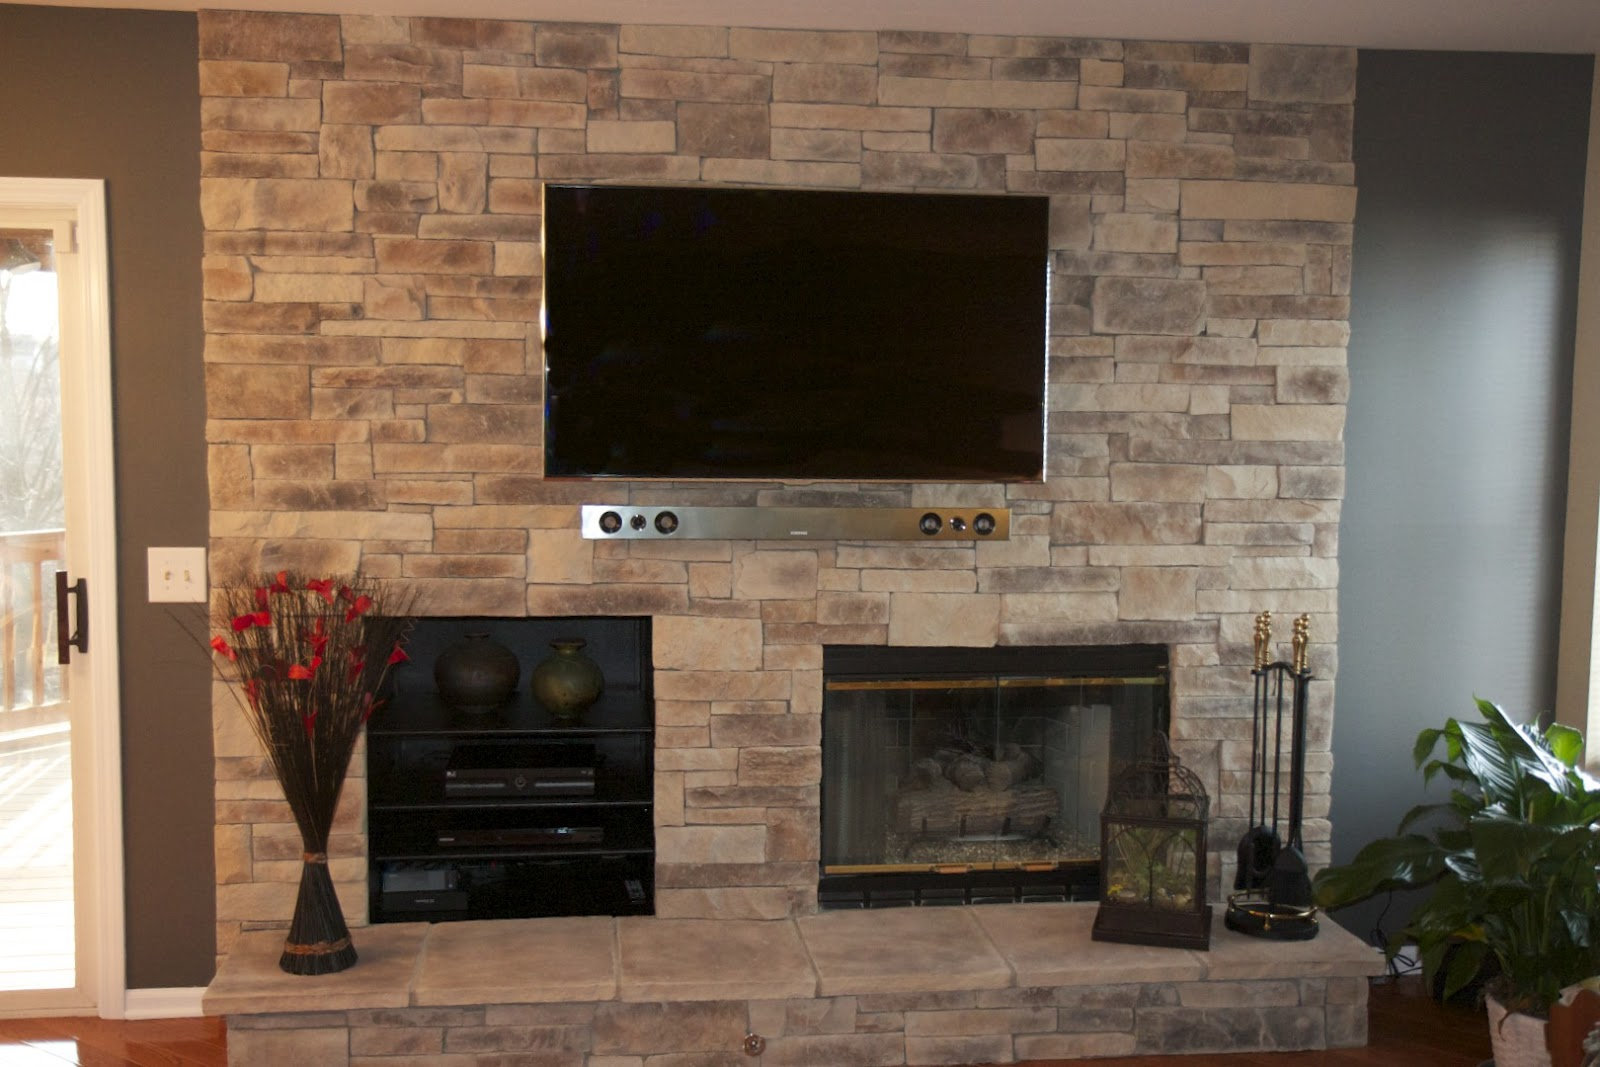 North star stone stone fireplaces stone exteriors stone fireplace design ideas with tv - Fire place walls ...